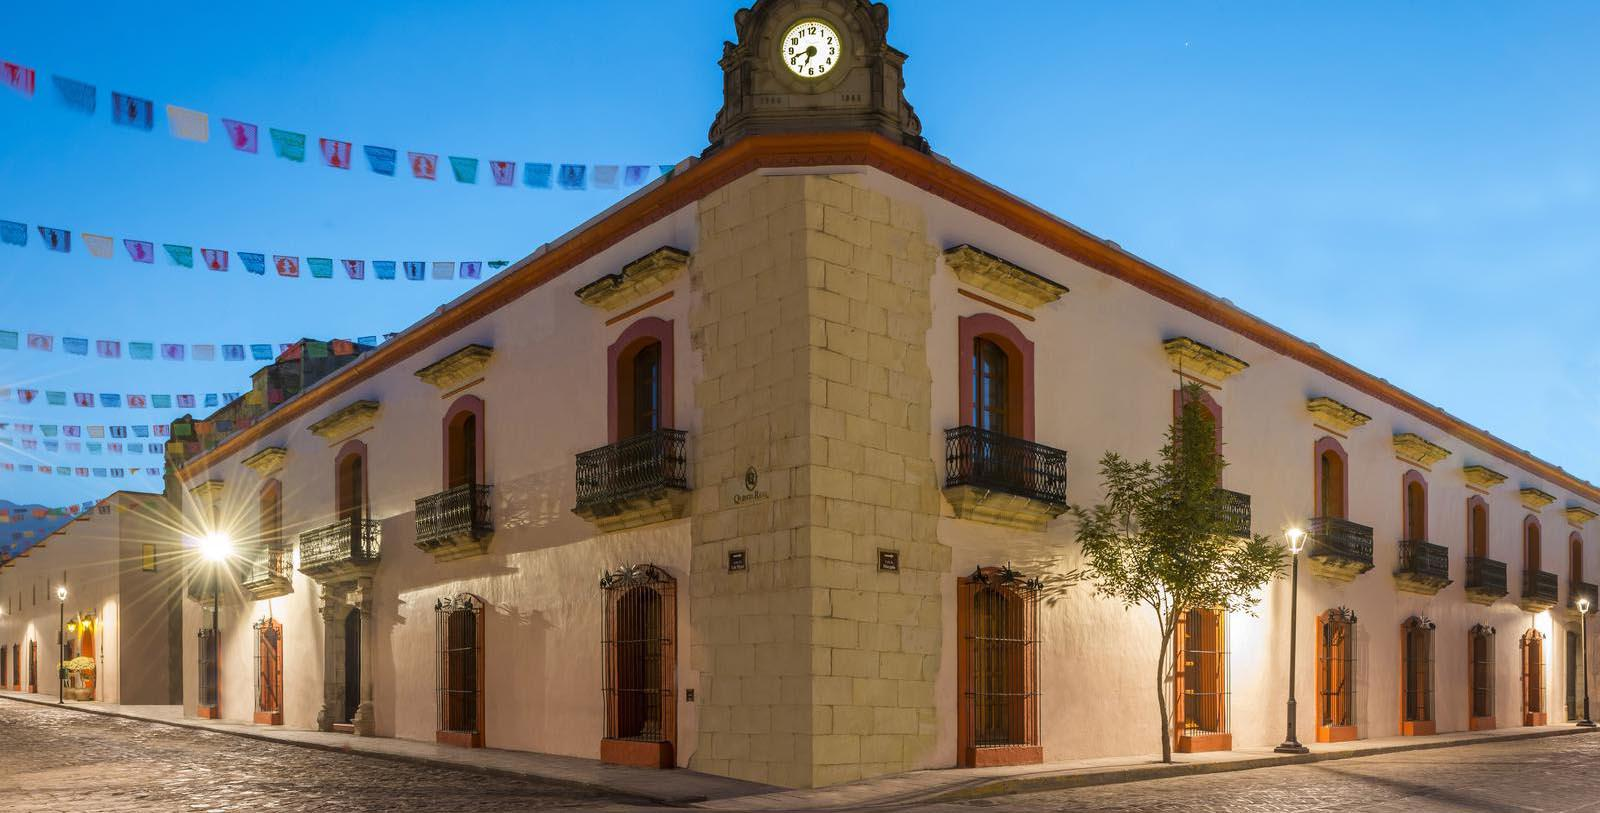 Image of Hotel Exterior Quinta Real Oaxaca, 1576, Member of Historic Hotels Worldwide, in Oaxaca, Mexico, Special Offers, Discounted Rates, Families, Romantic Escape, Honeymoons, Anniversaries, Reunions